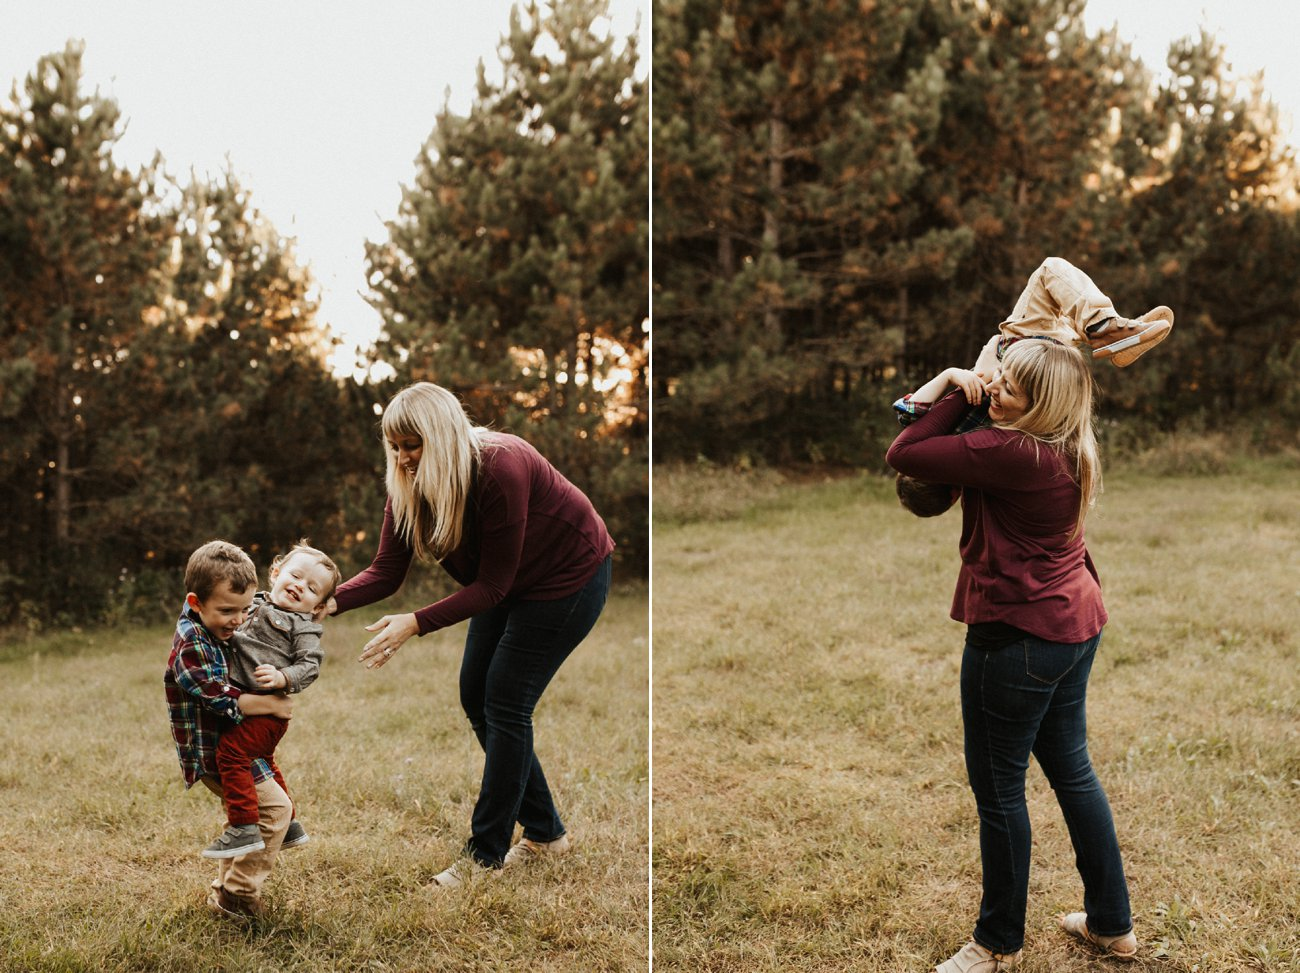 MinneapolisFamilySession_44.jpg